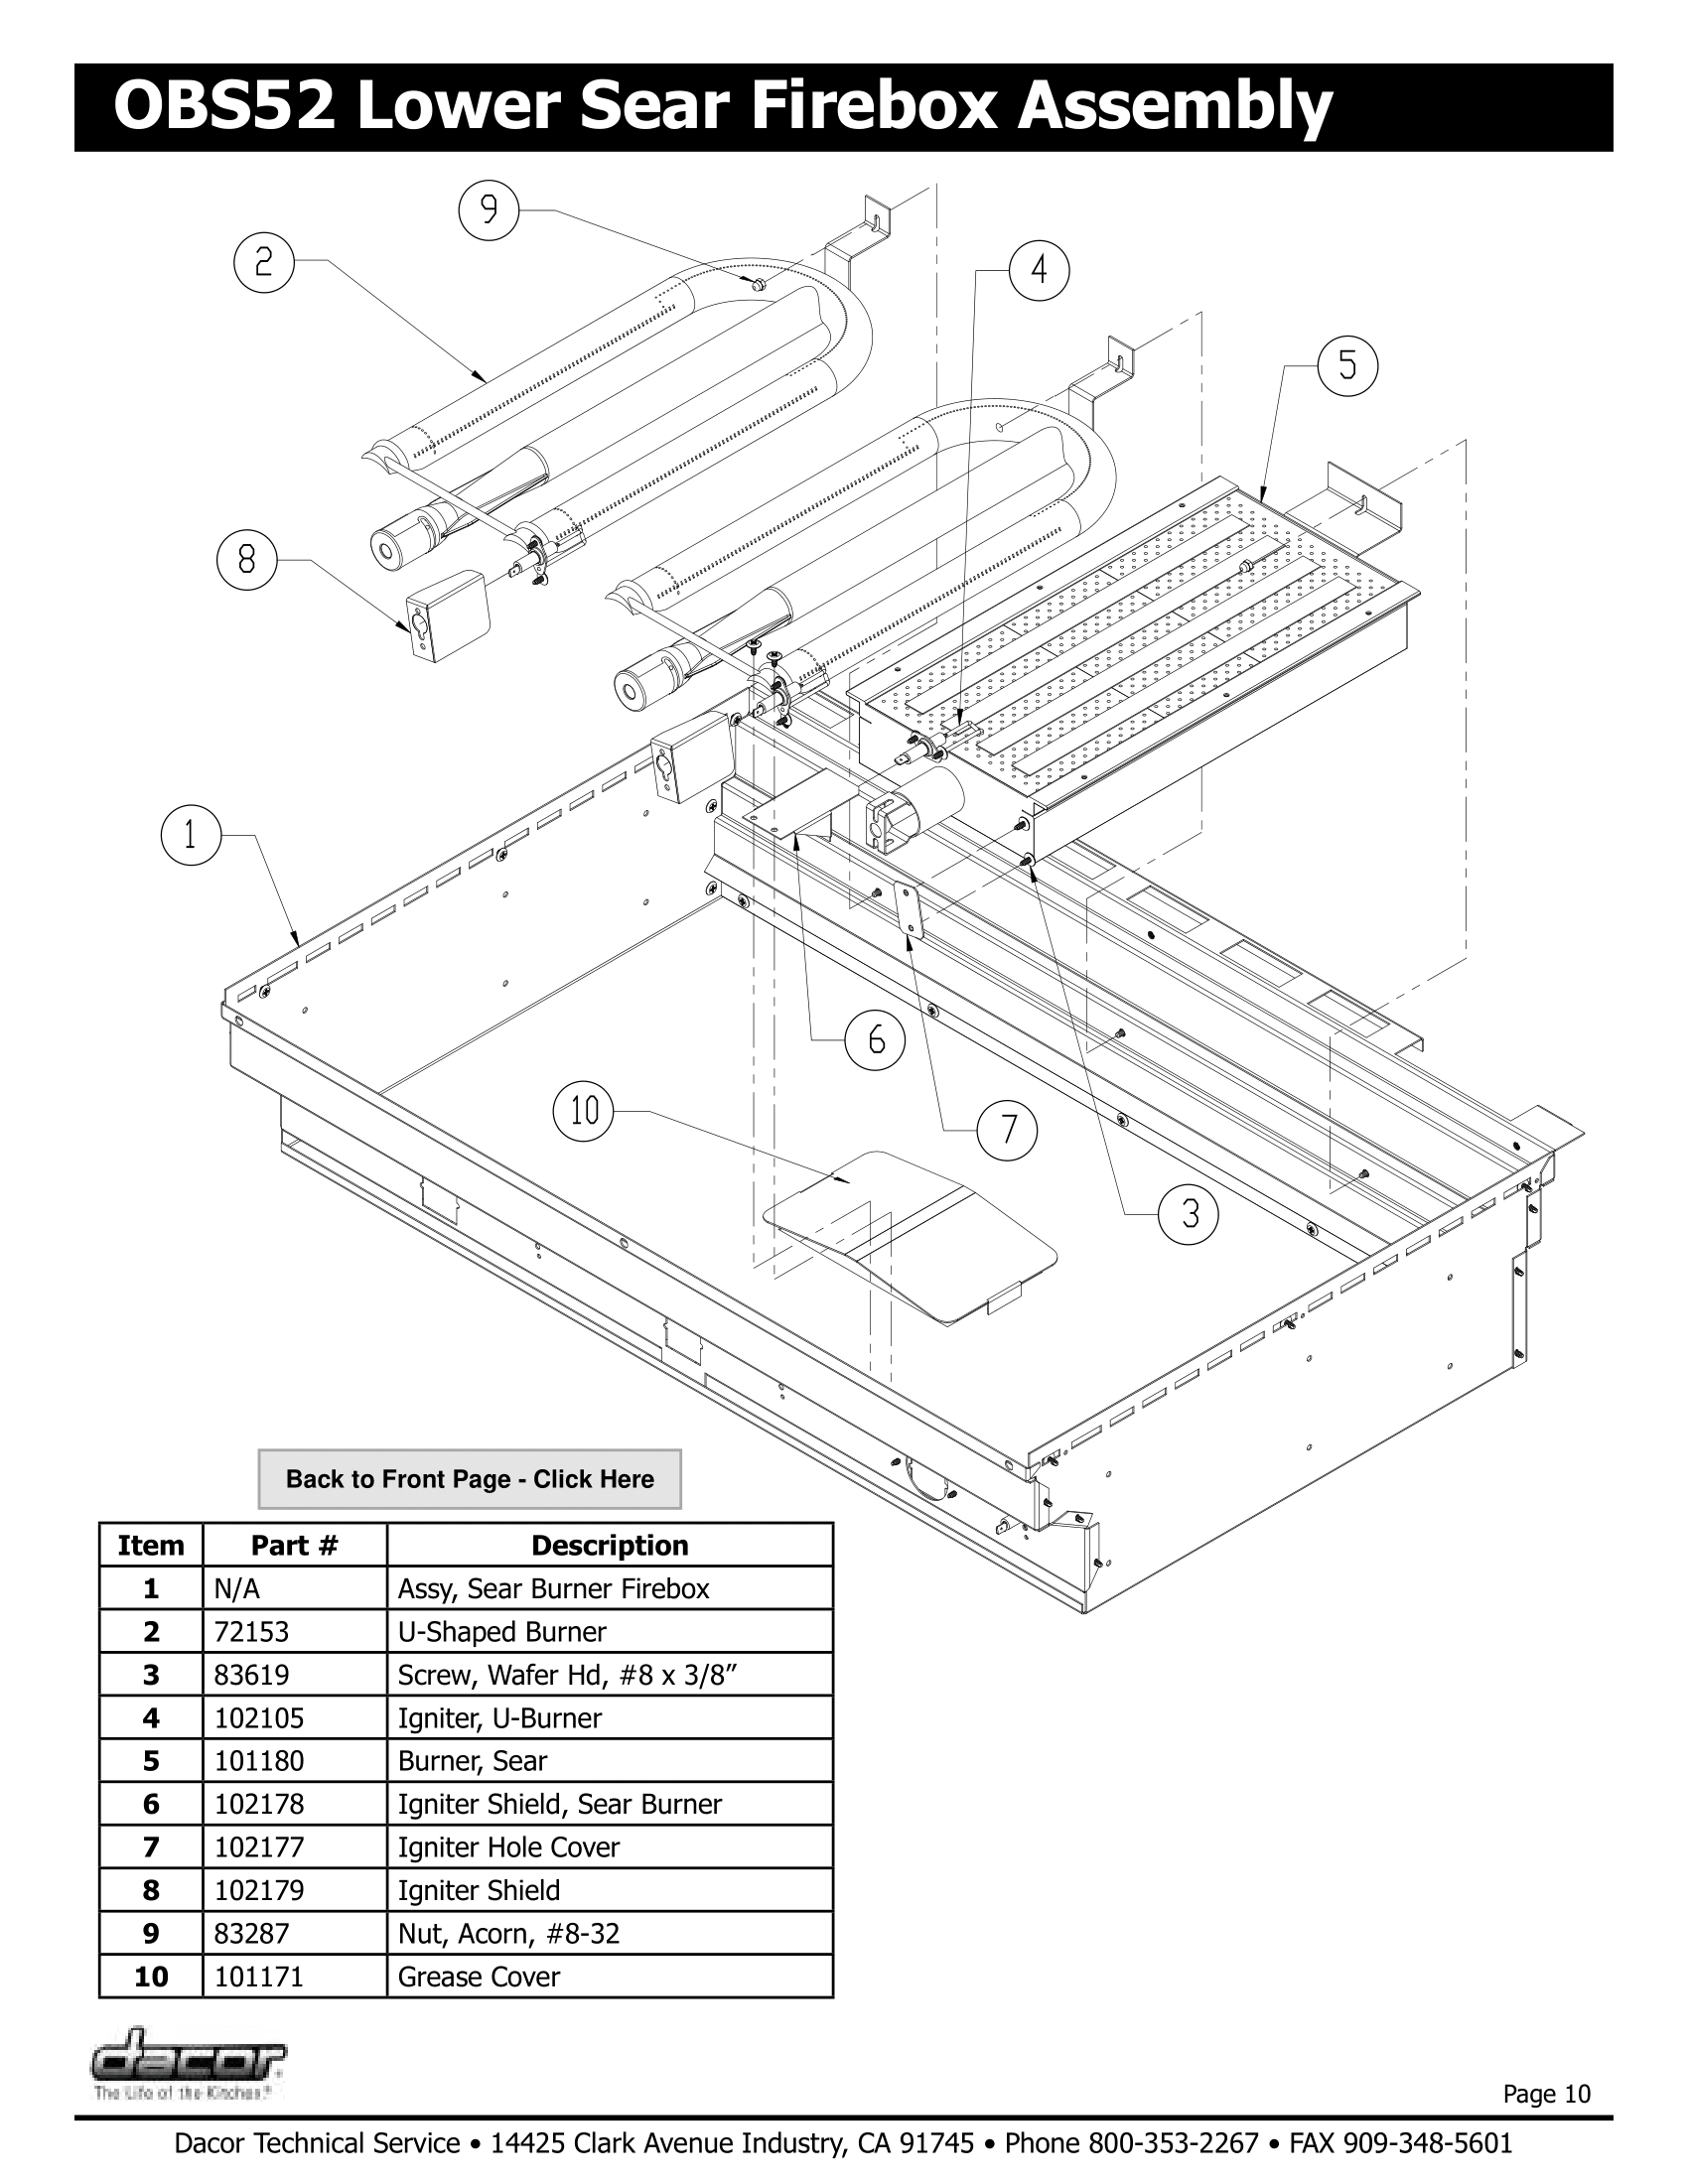 Dacor OBS52 Lower Sear Firebox Assembly Schematic